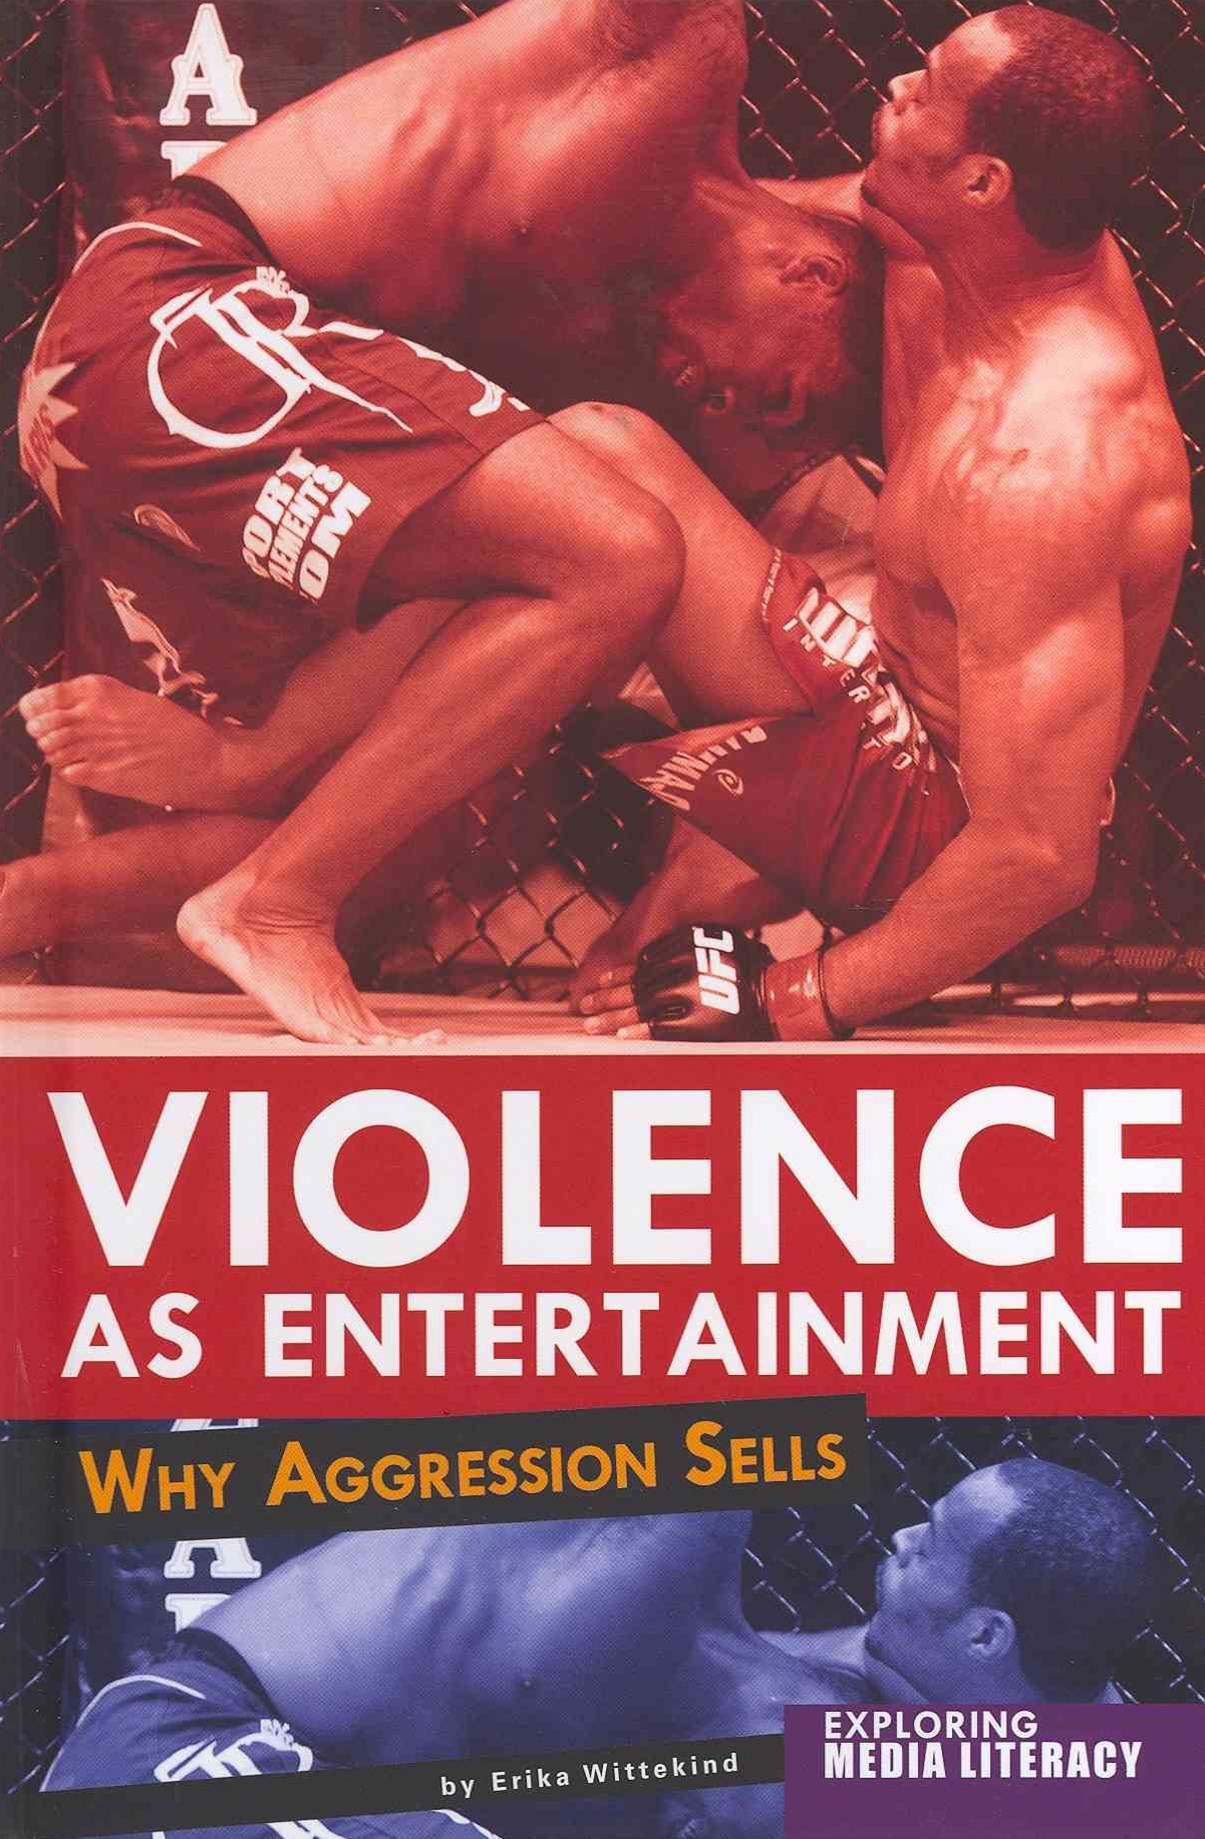 Violence as Entertainment